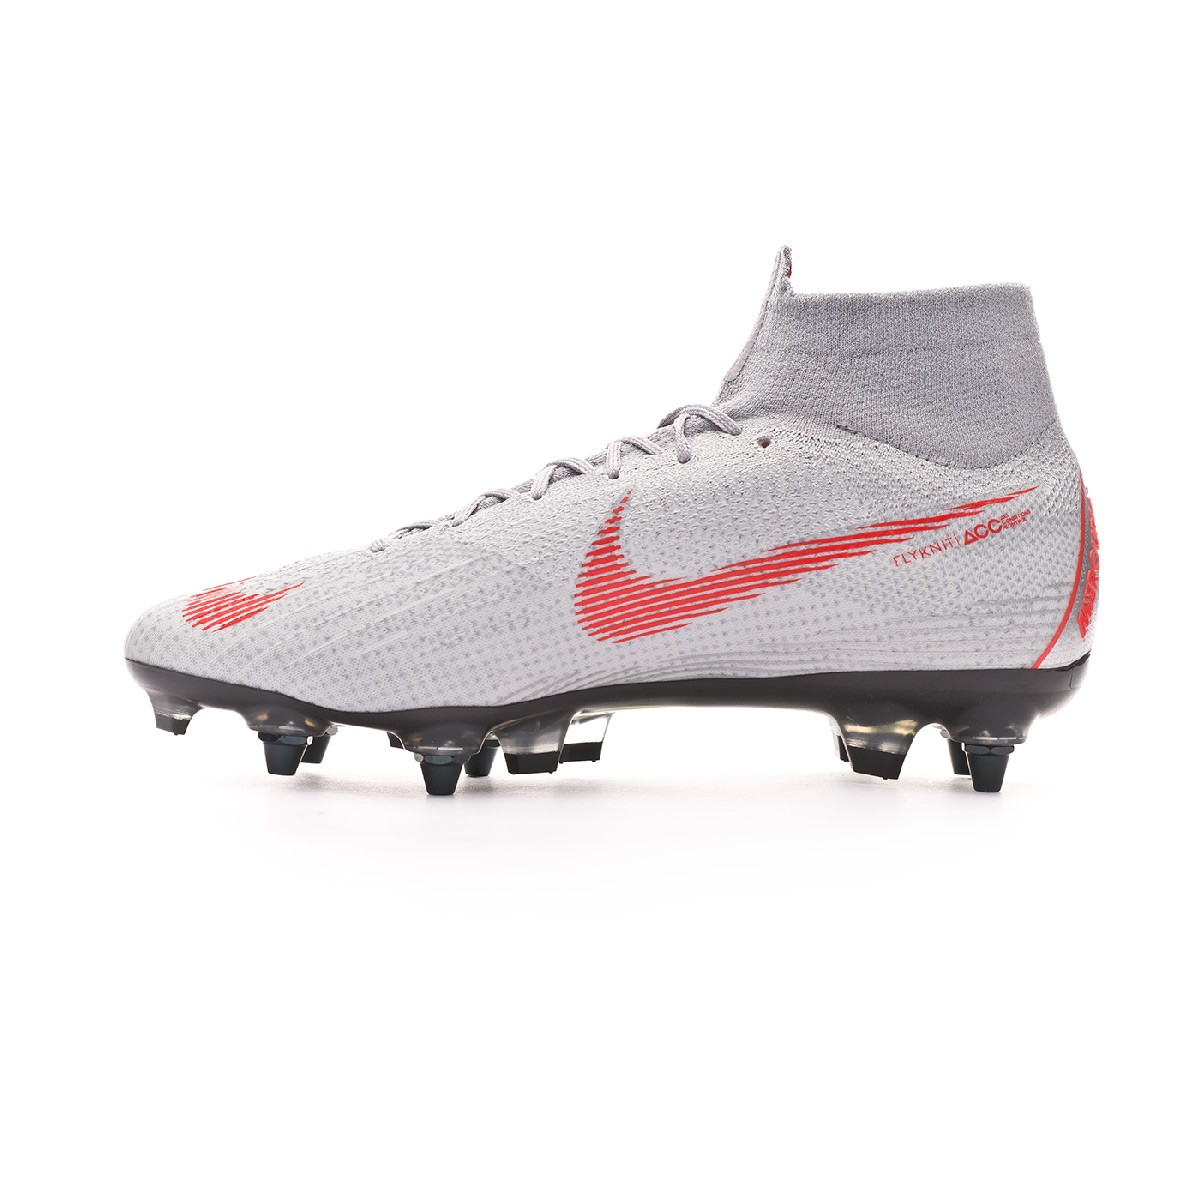 bb09047bf Football Boots Nike Mercurial Superfly VI Elite Anti-Clog SG-Pro Wolf grey-Light  crimson-Pure platinum - Tienda de fútbol Fútbol Emotion